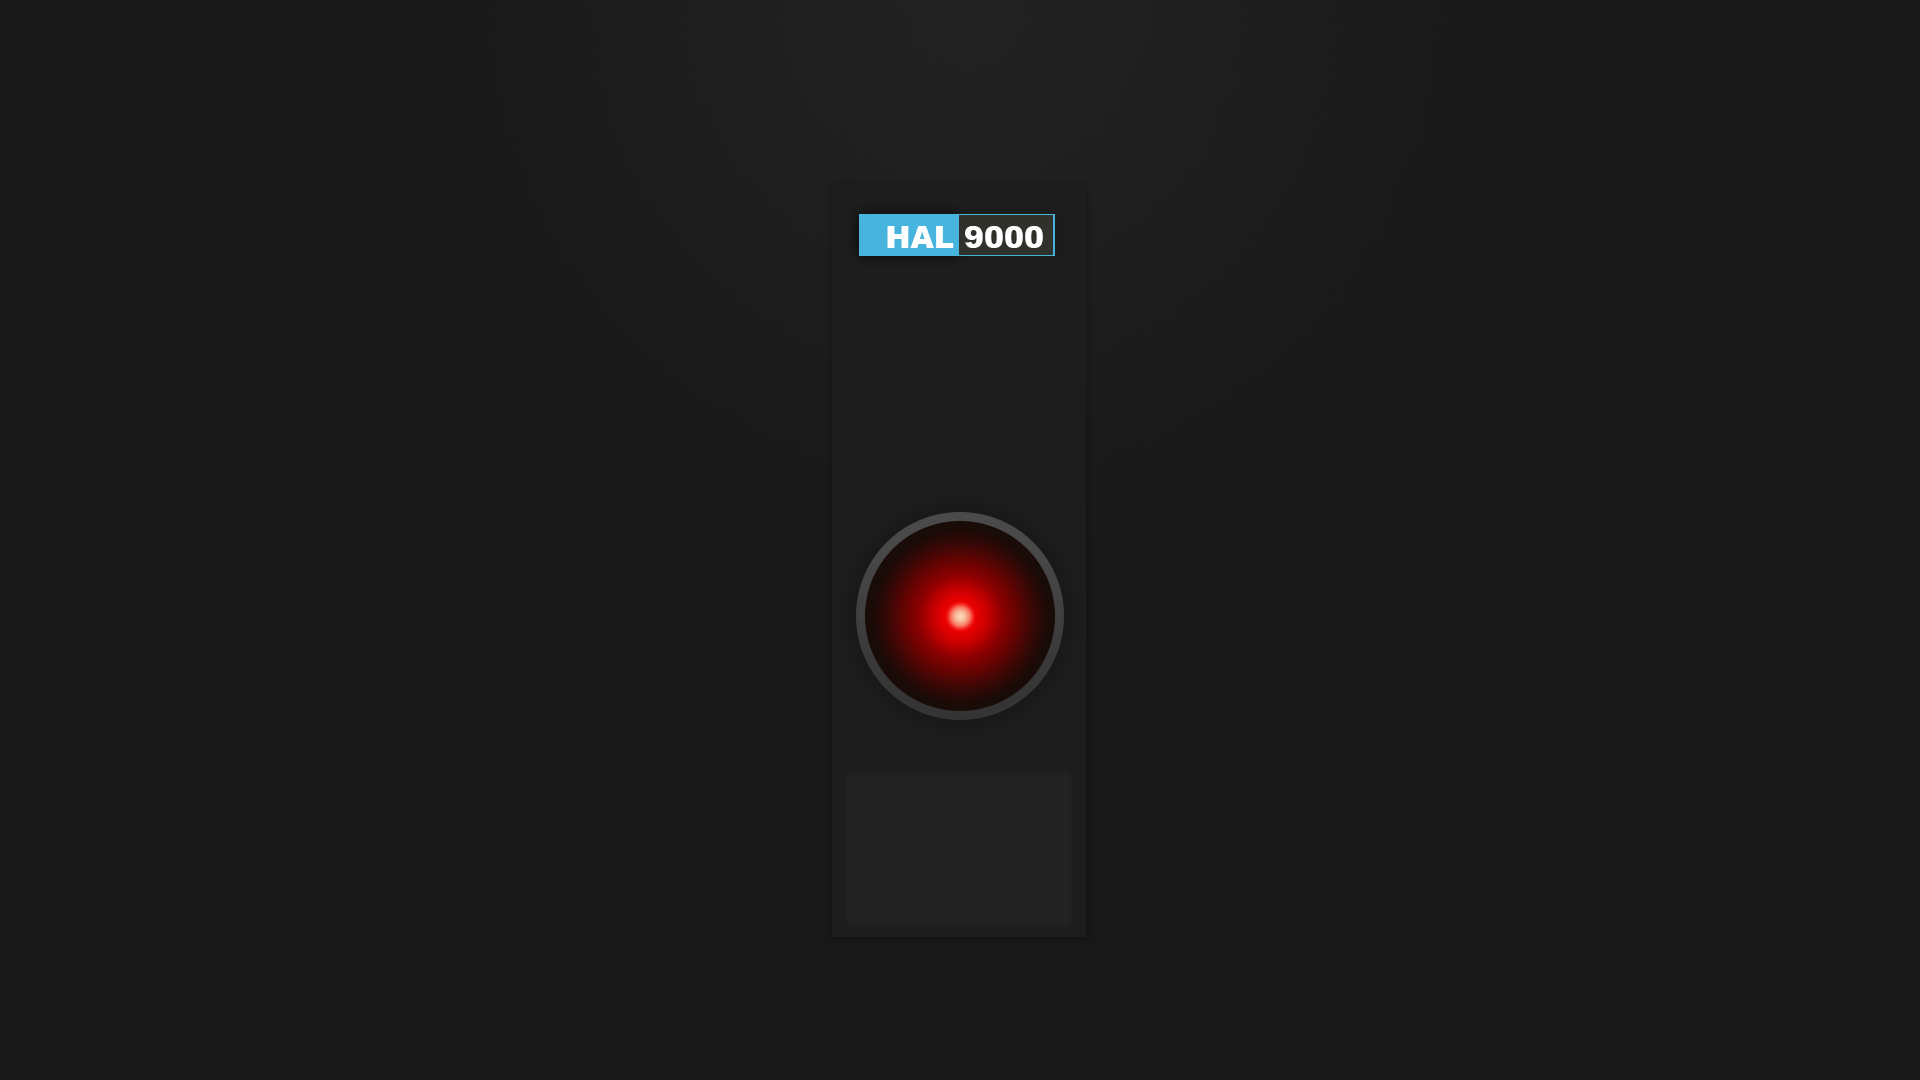 hal 9000 by friedpixl on deviantart